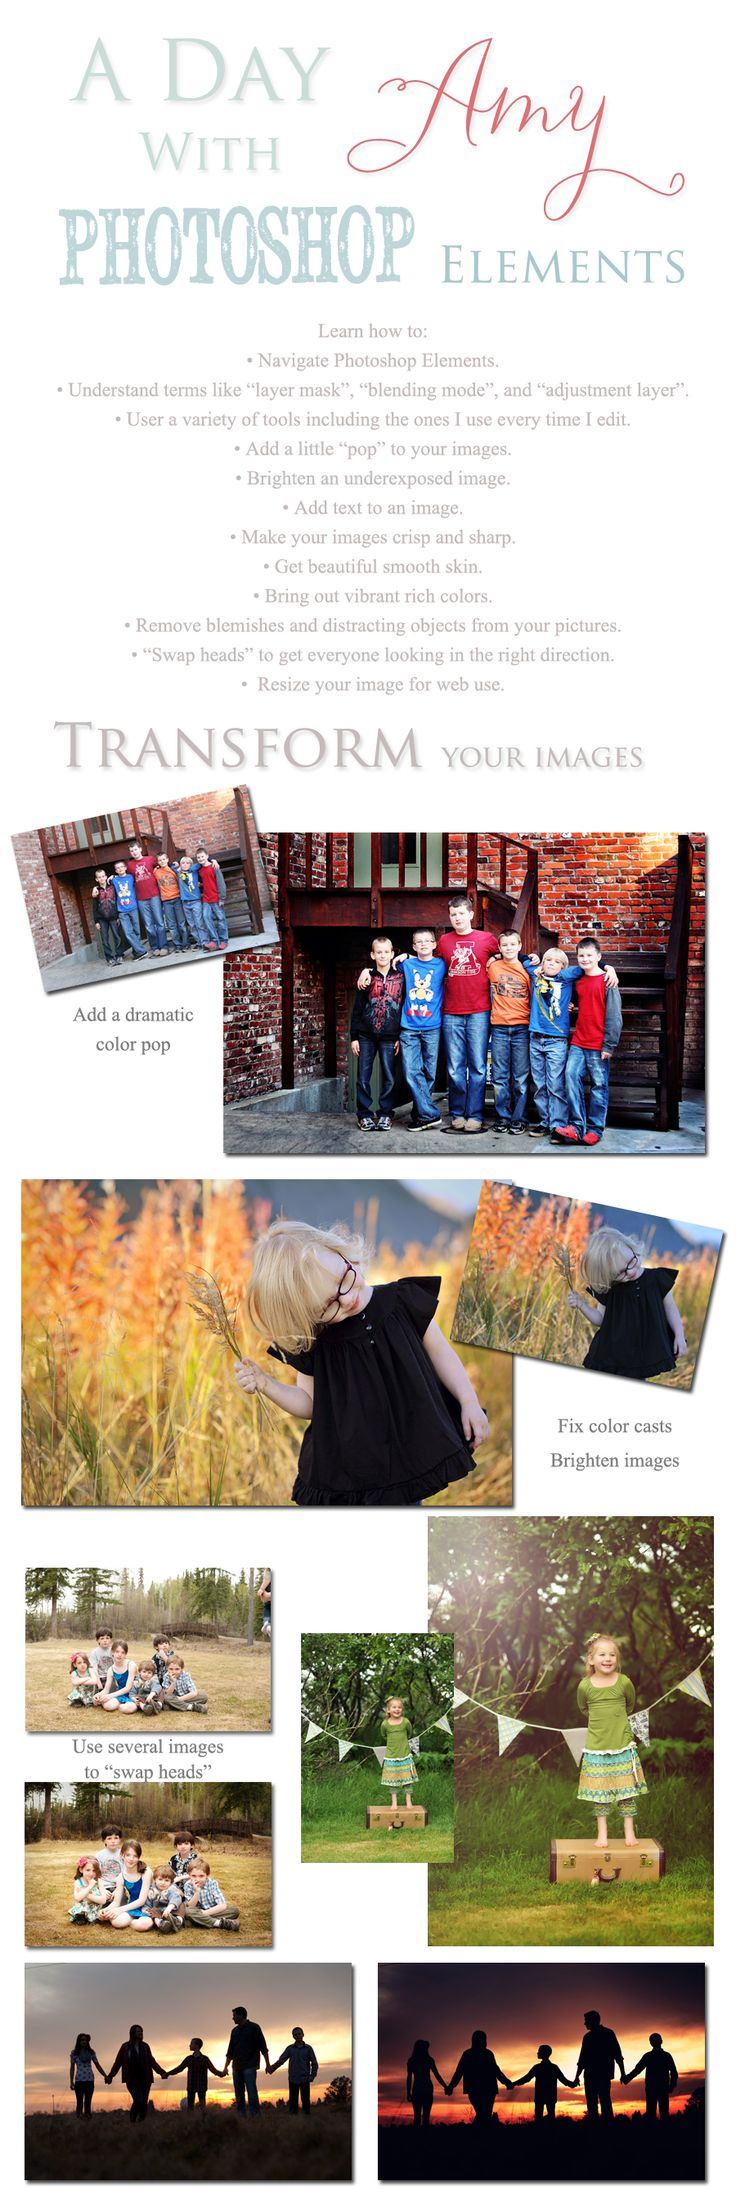 How to fix color cast in photoshop elements - A Day With Amy Photoshop Elements Online Simply B Photos